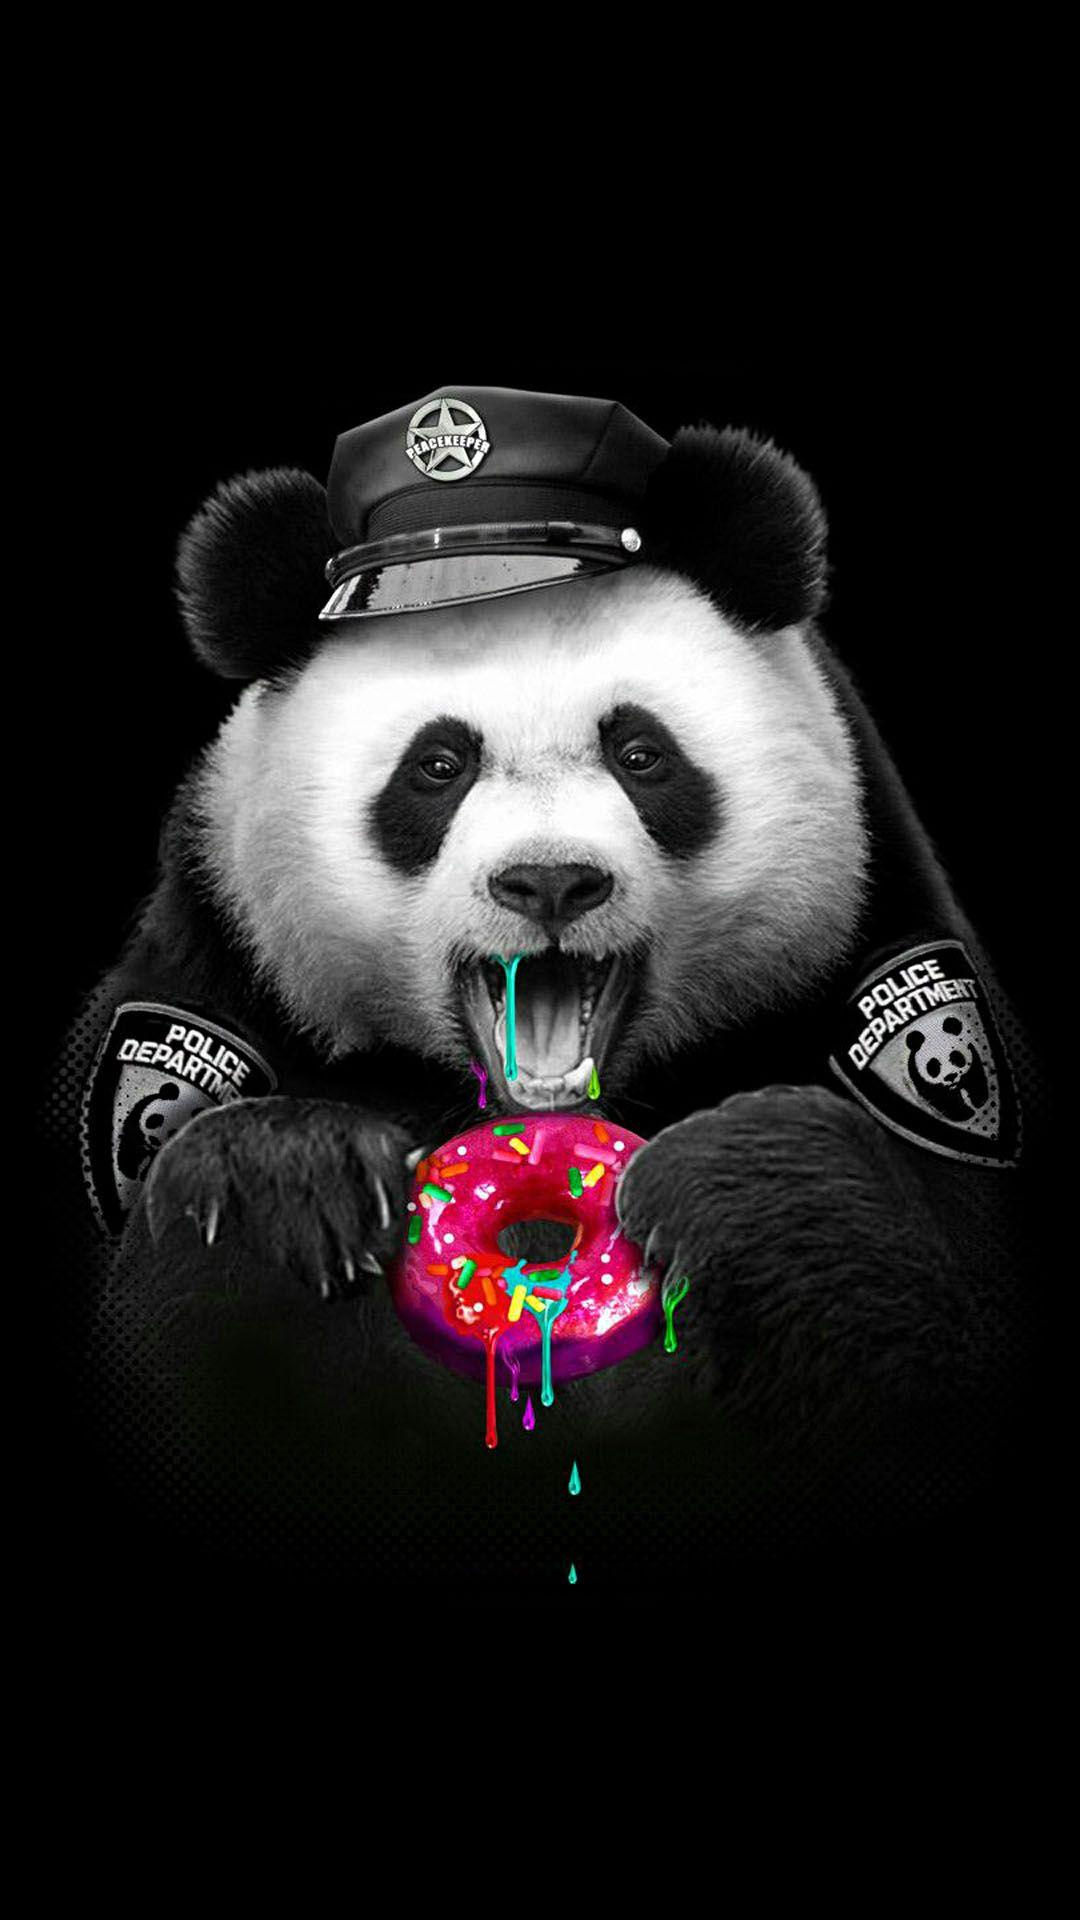 Supreme Panda Wallpapers Wallpaper Cave